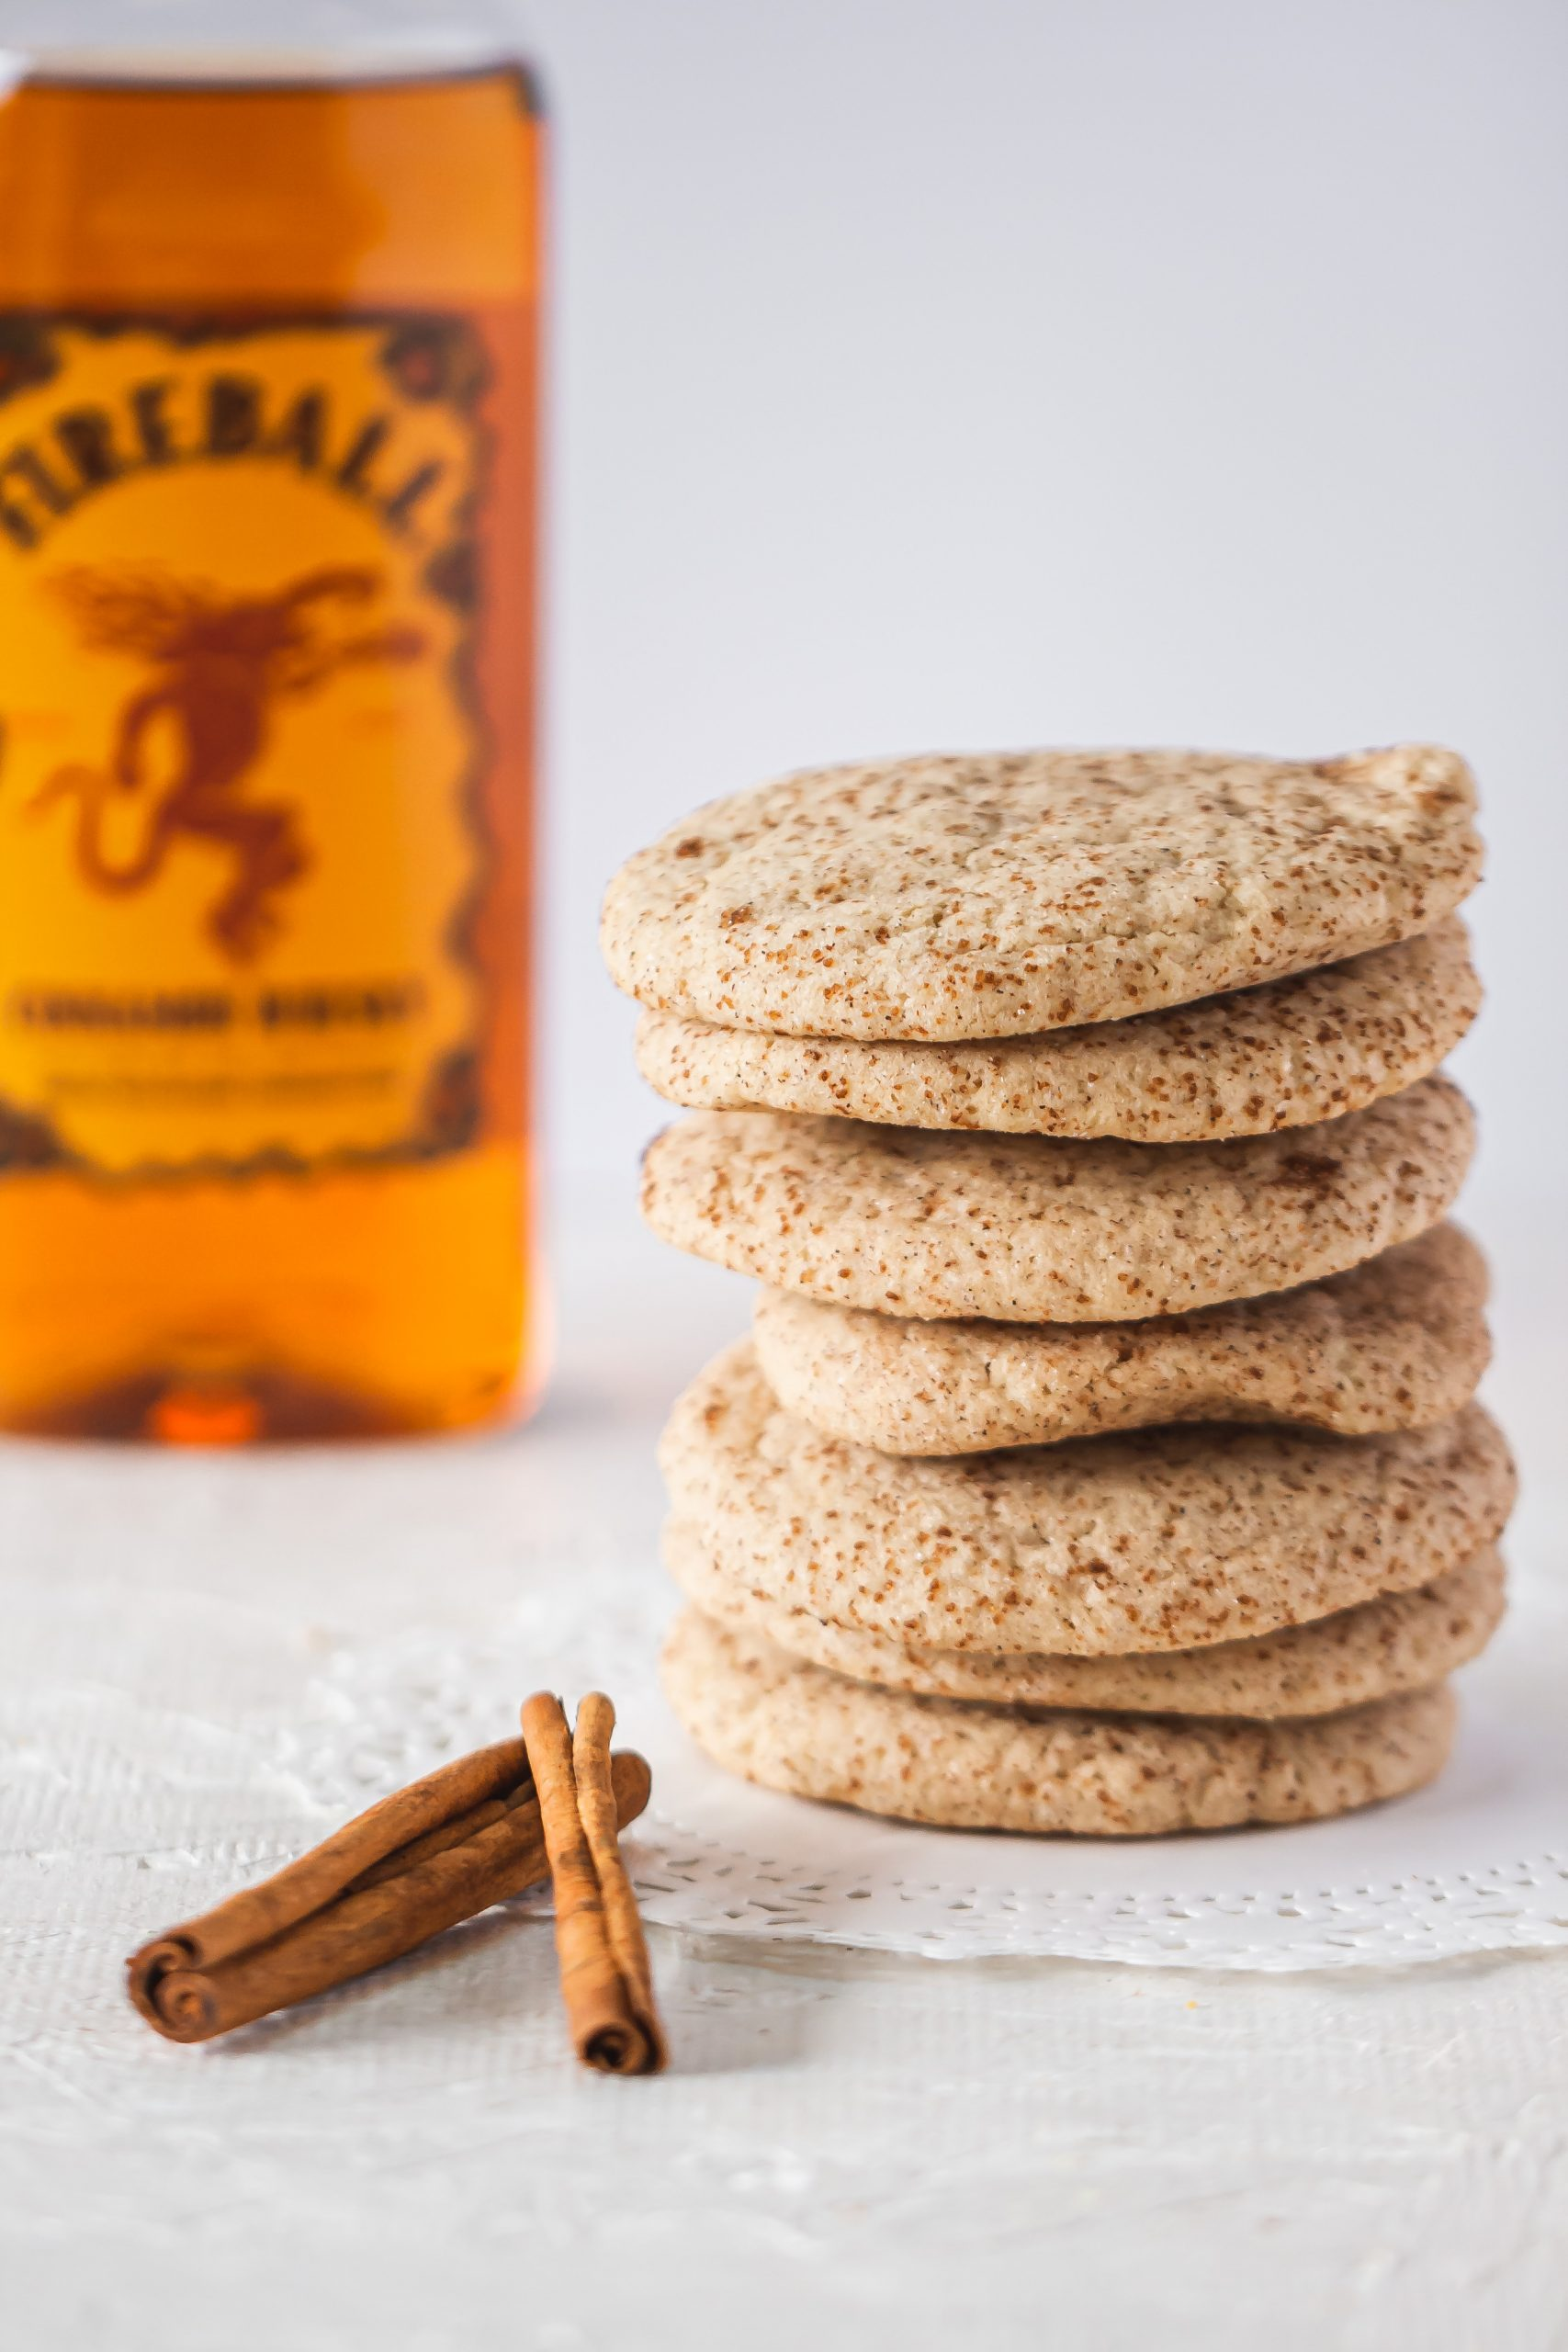 Food photo of stacked snickerdoodle cookies with cinnamon sticks and Fireball